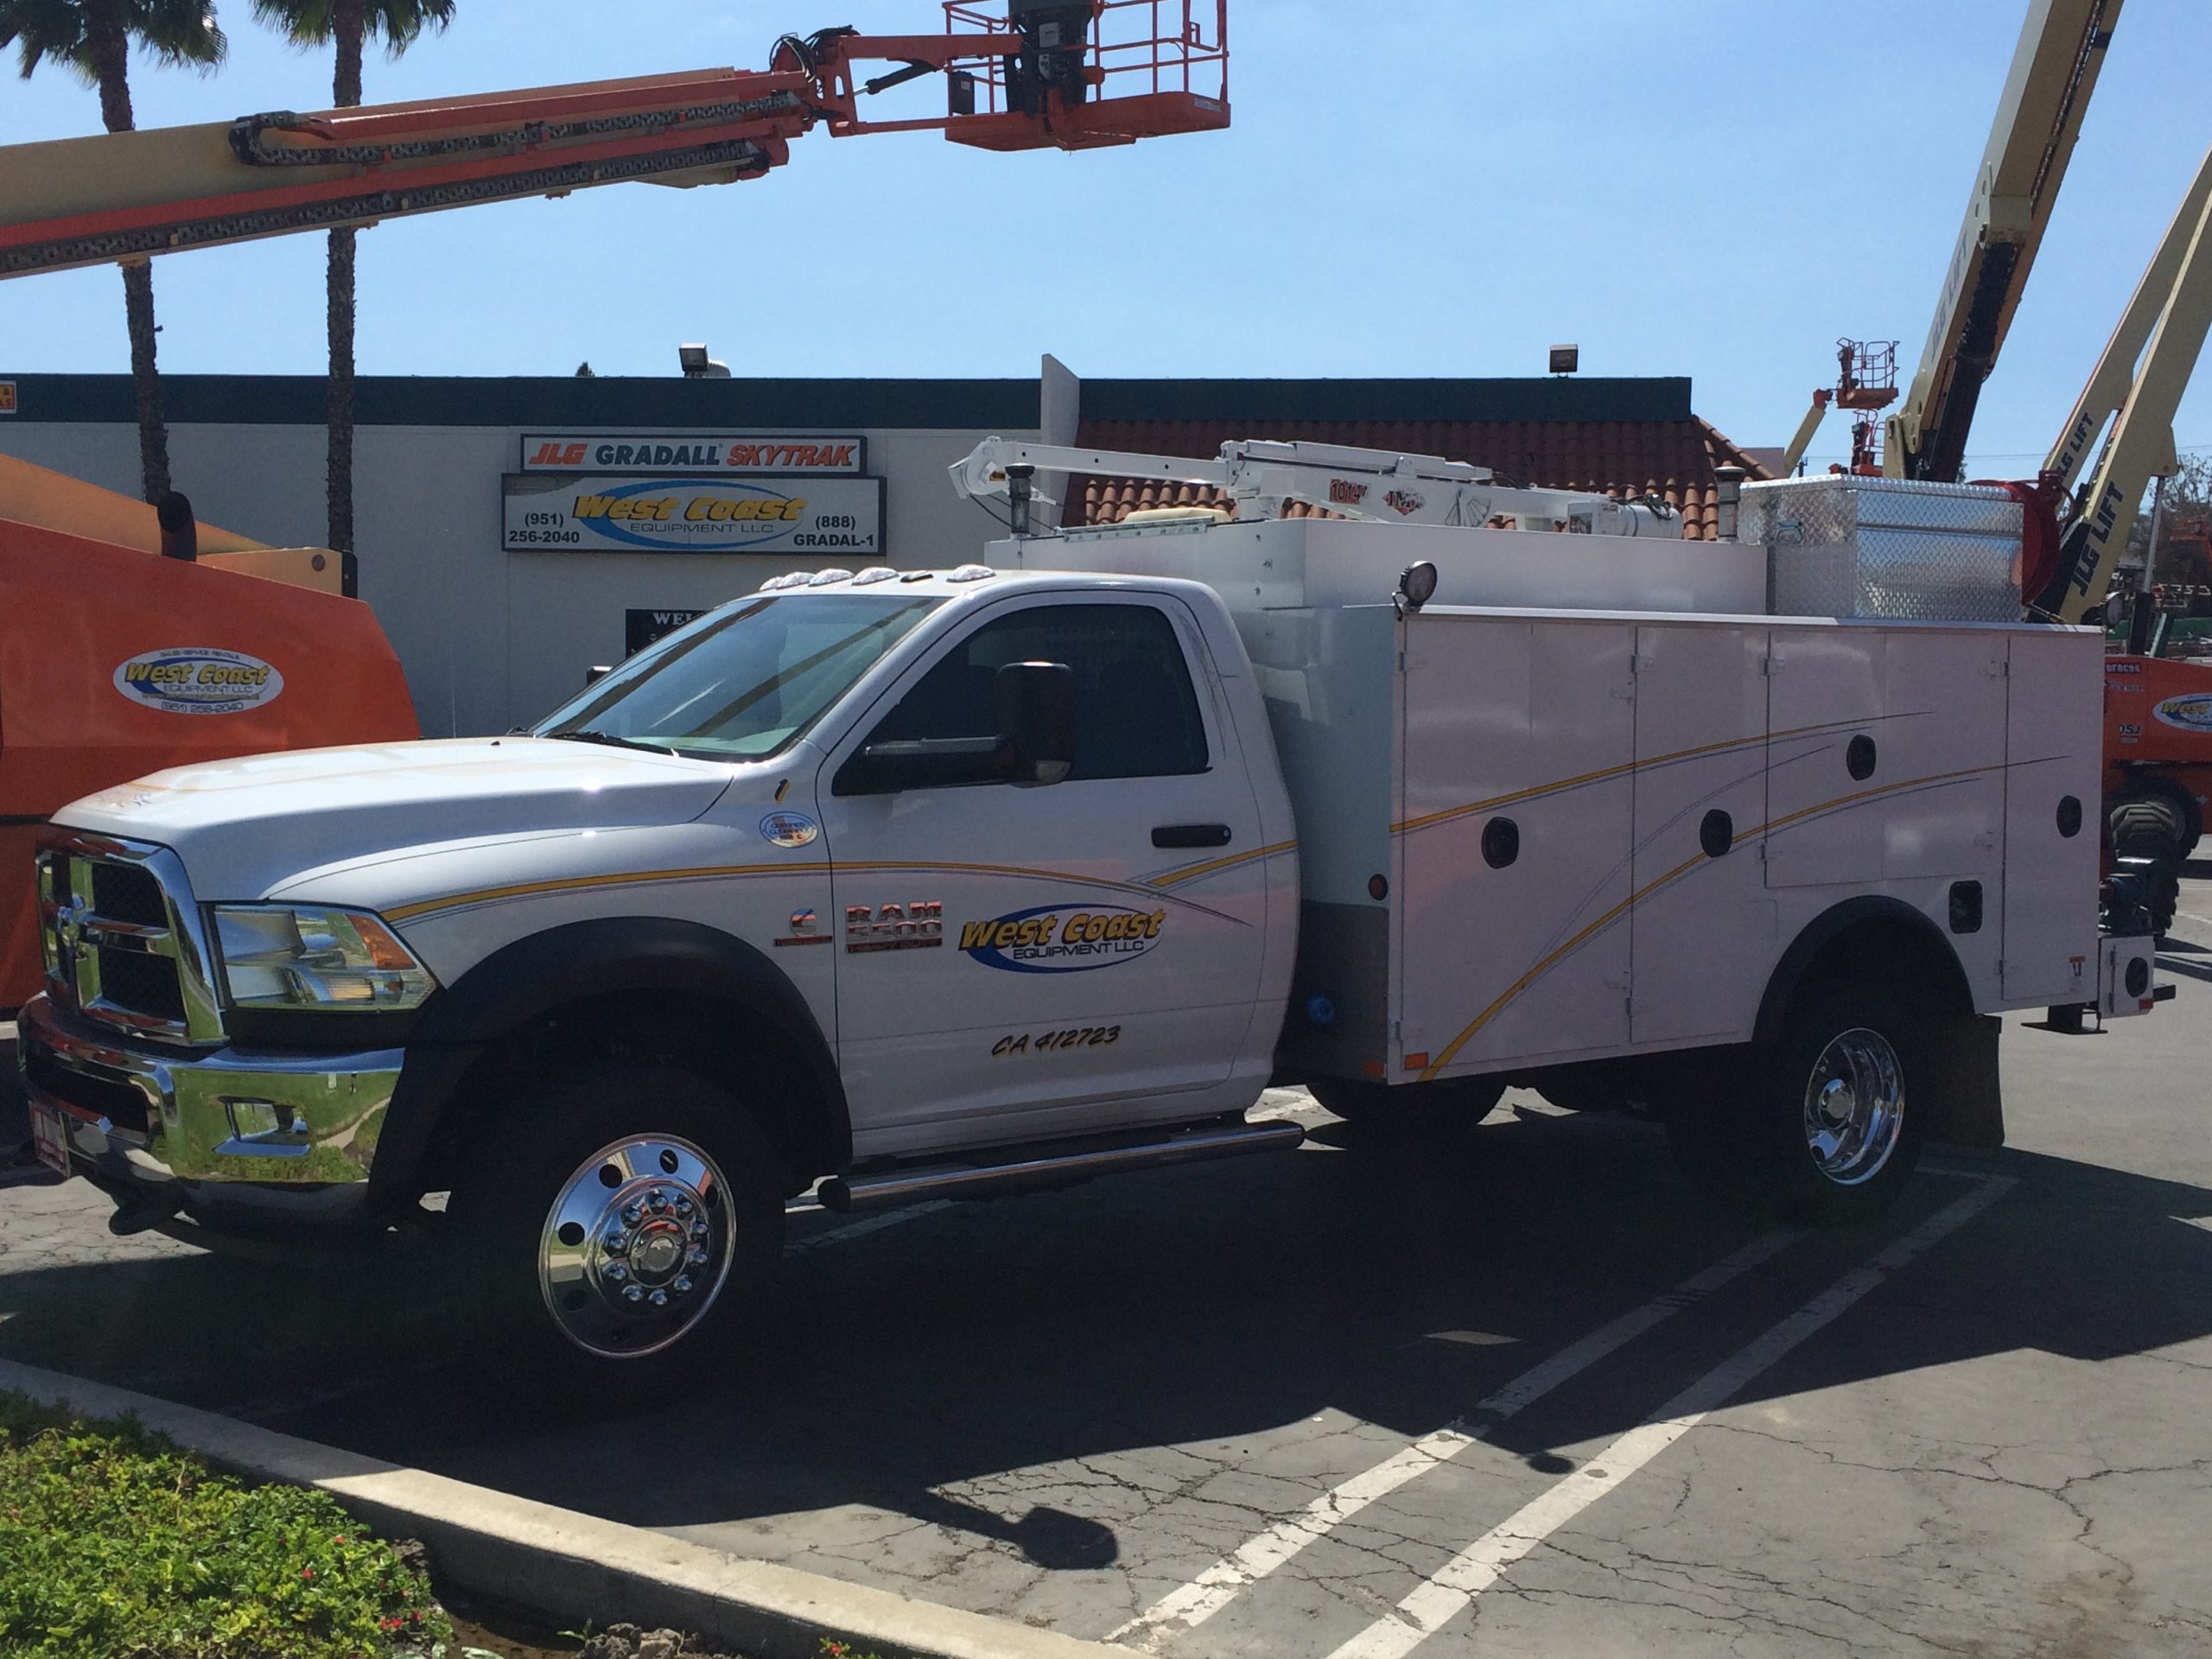 JLG Gradall field service maintenance trucks